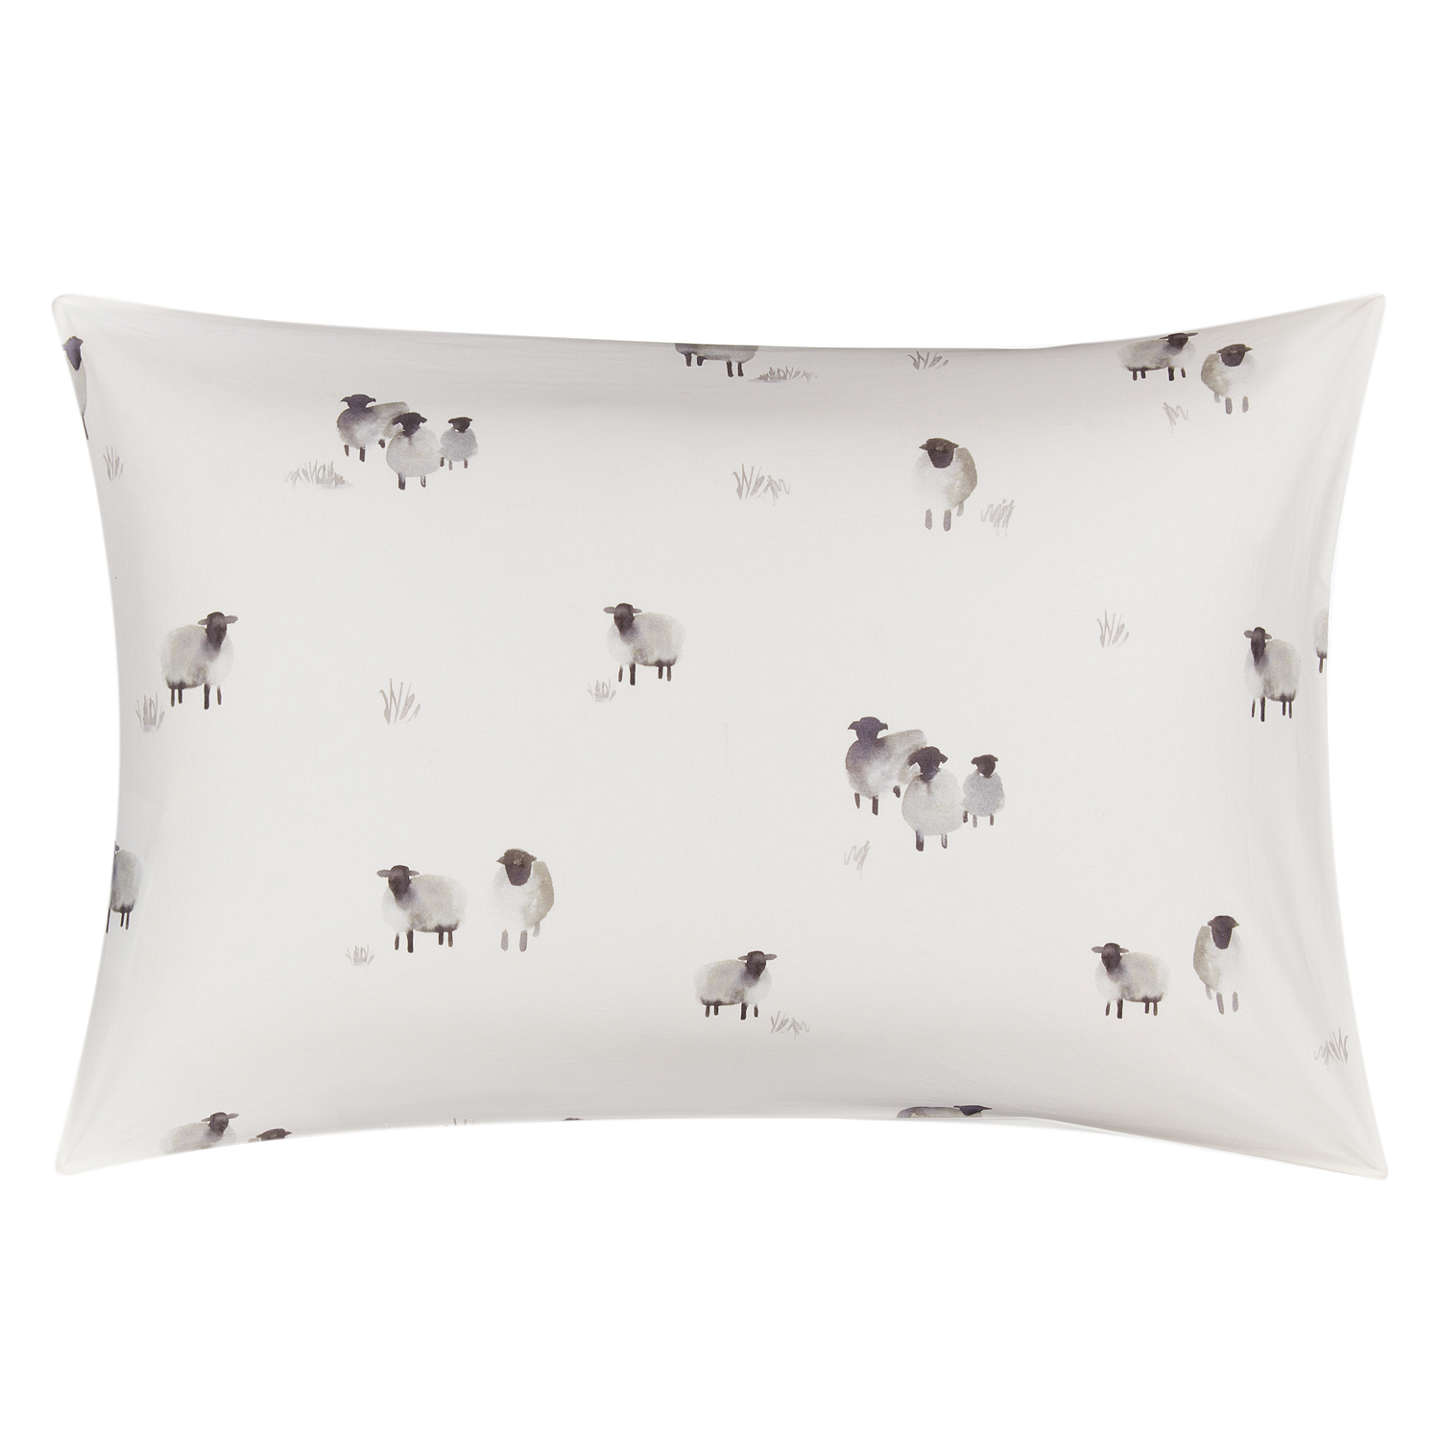 BuyJohn Lewis Highland Sheep Print Cotton Duvet Cover and Pillowcase Set, Single Online at johnlewis.com